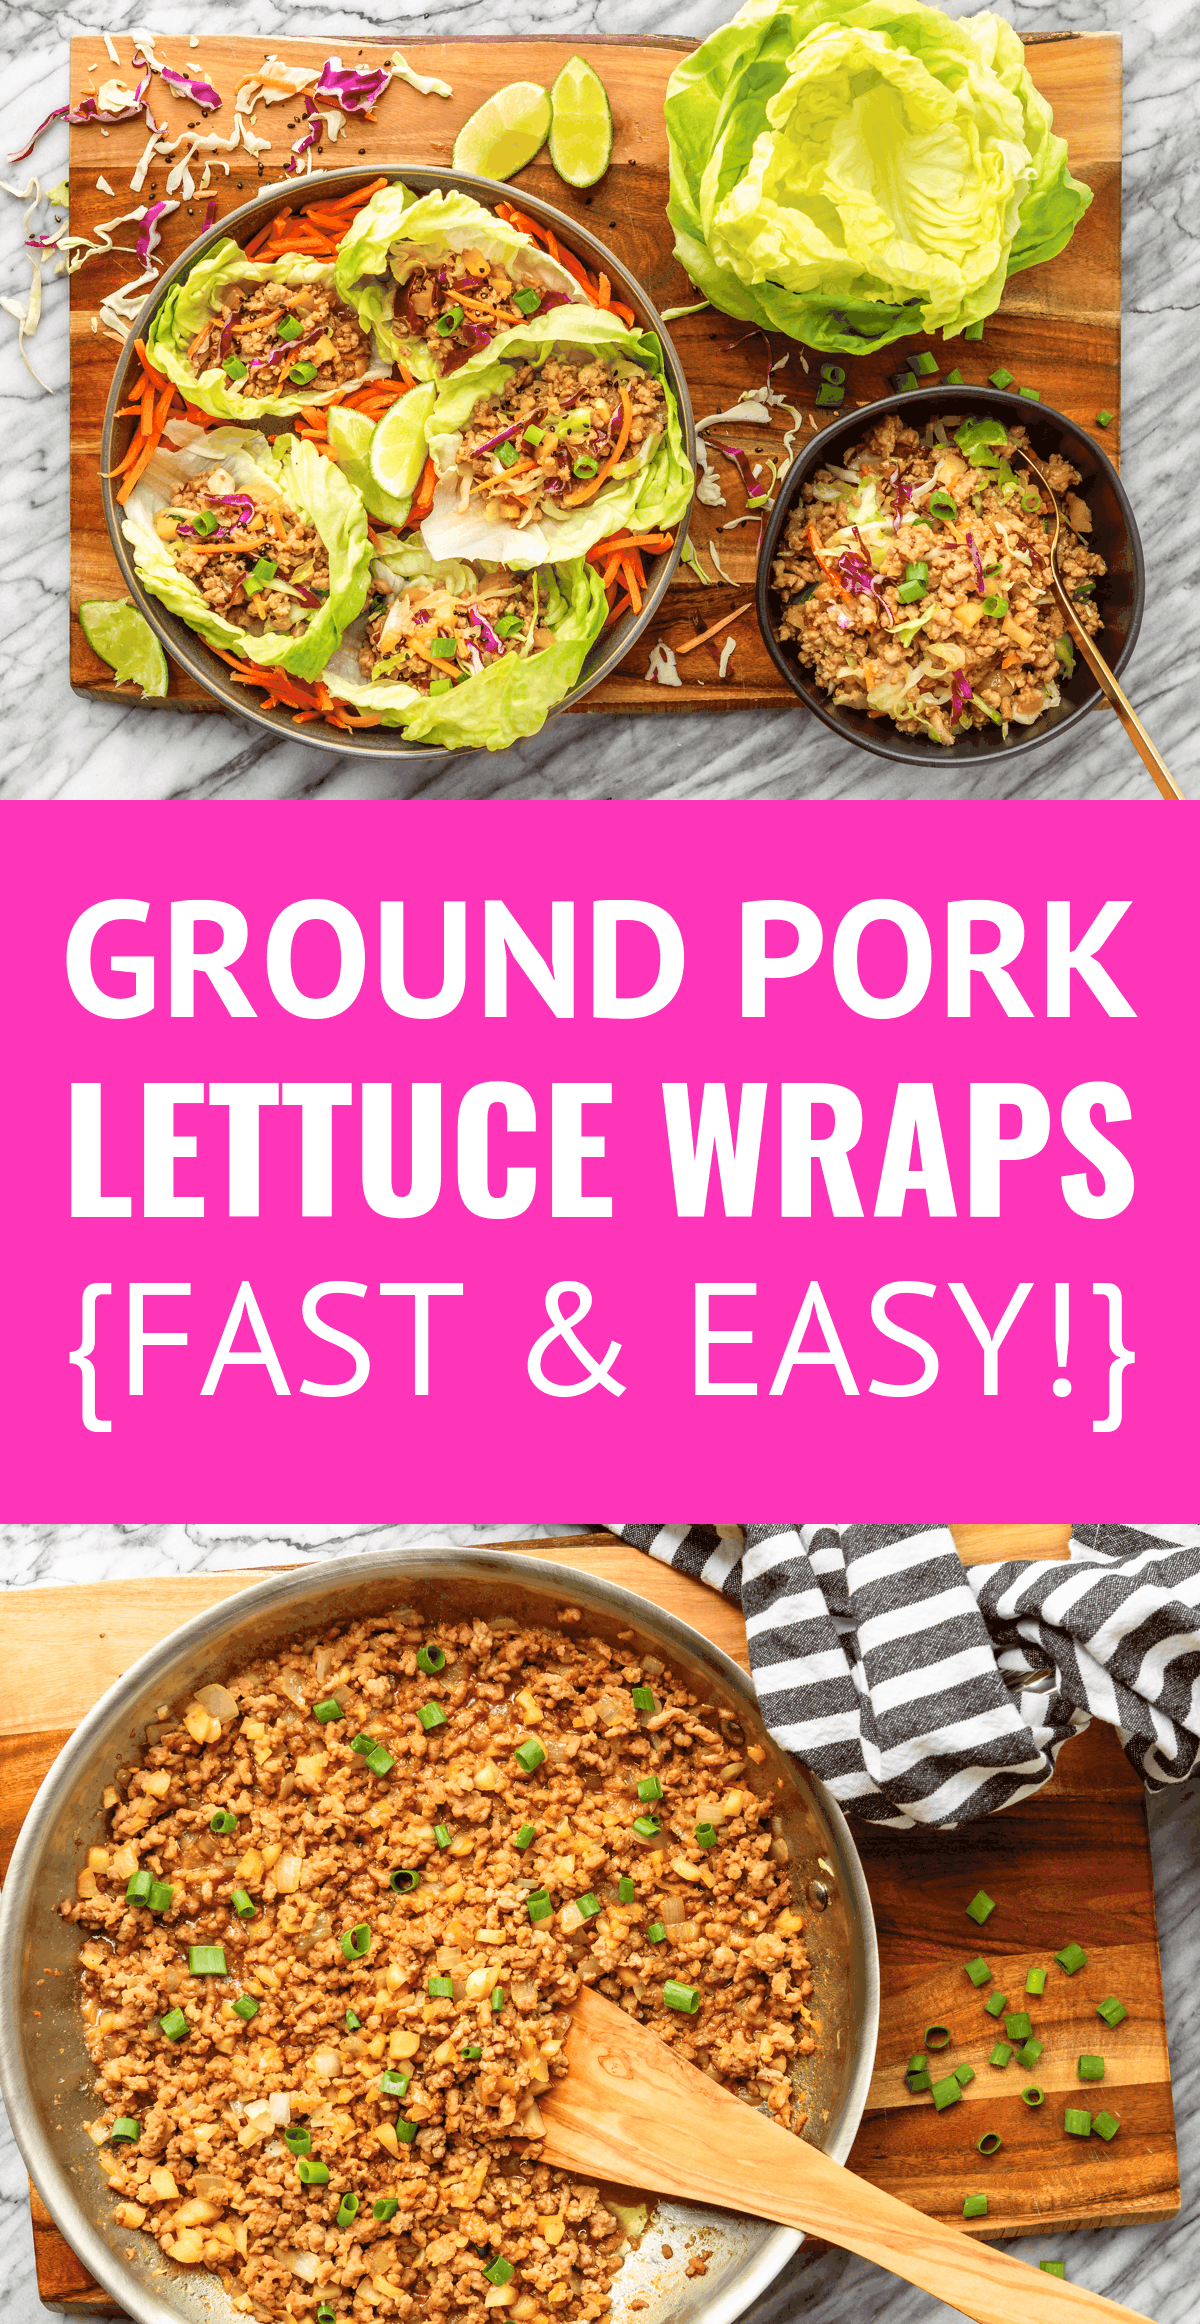 Easy Asian Ground Pork Lettuce Wraps -- this pork lettuce wraps recipe is a total crowd pleaser! Tender browned ground pork mixed with crunchy veggies and a tangy sweet & sour Asian sauce, all wrapped up in a cool and crisp bibb lettuce leaf, makes for a super satisfying meal in under 20 minutes. | ground pork lettuce cups | healthy pork lettuce wraps | low carb pork lettuce wraps